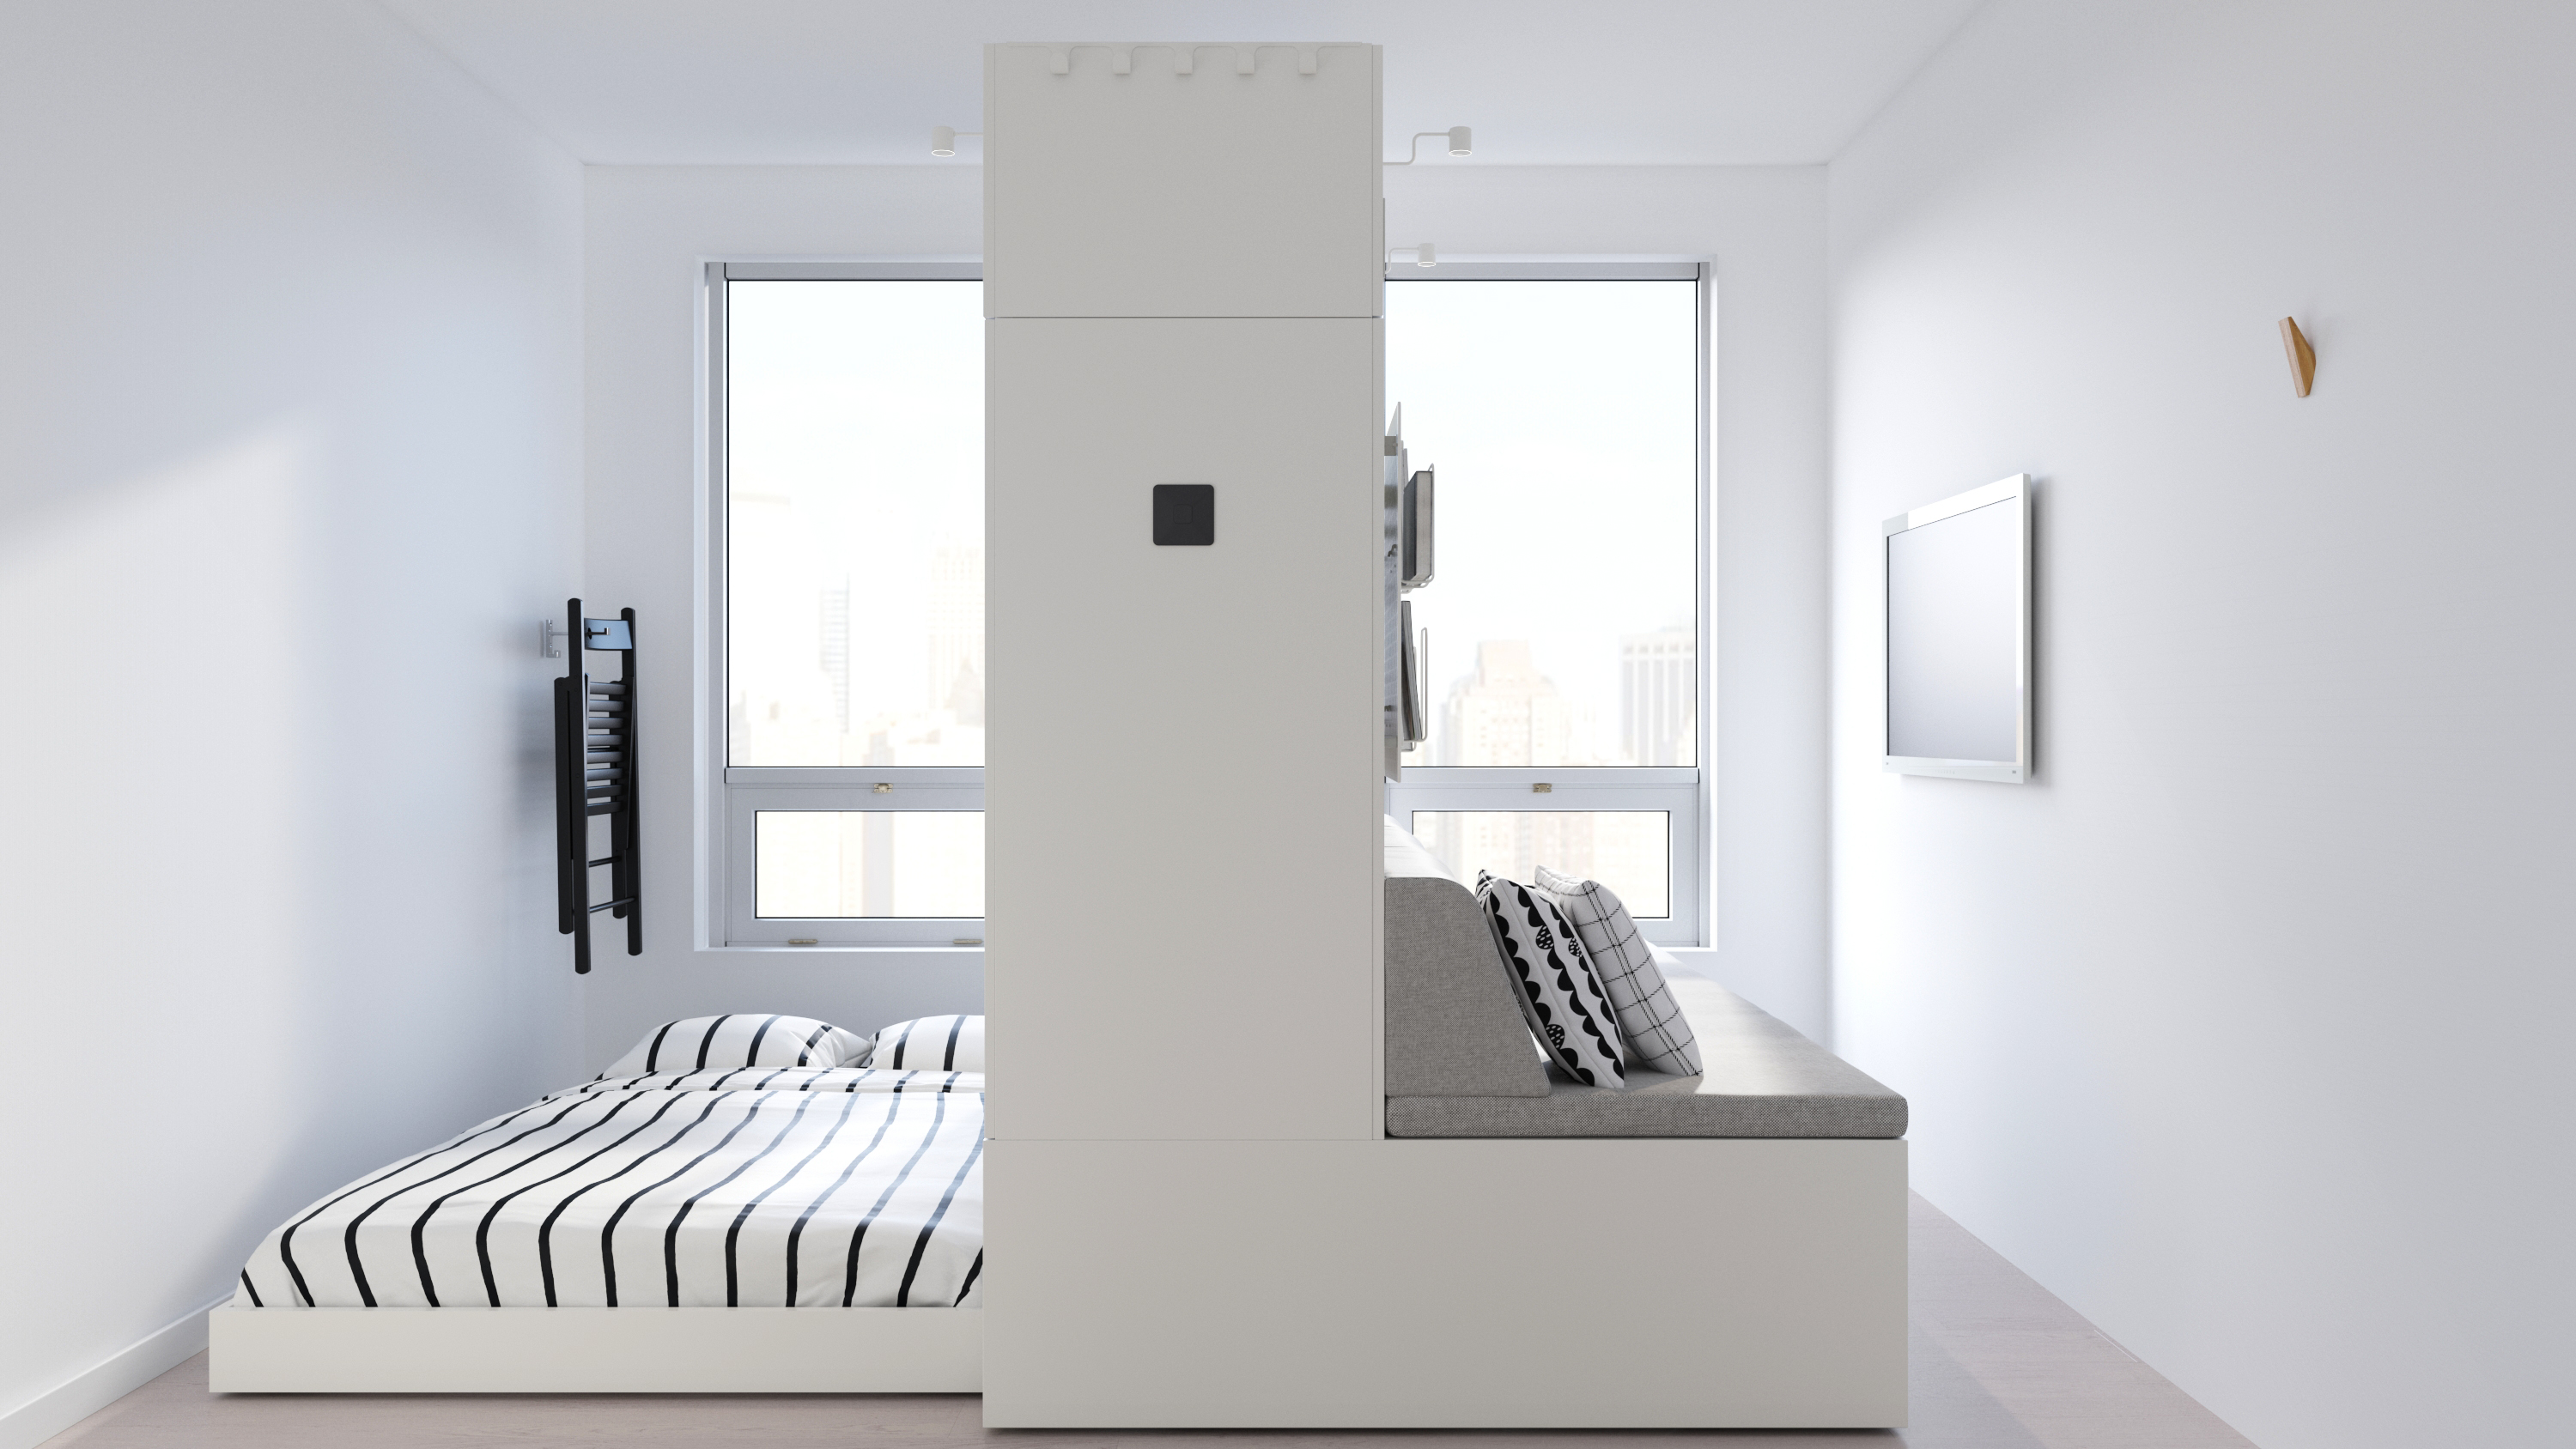 Not Your Grandma's Murphy Beds: IKEA's Latest Line Is the Future of Small Space Furniture